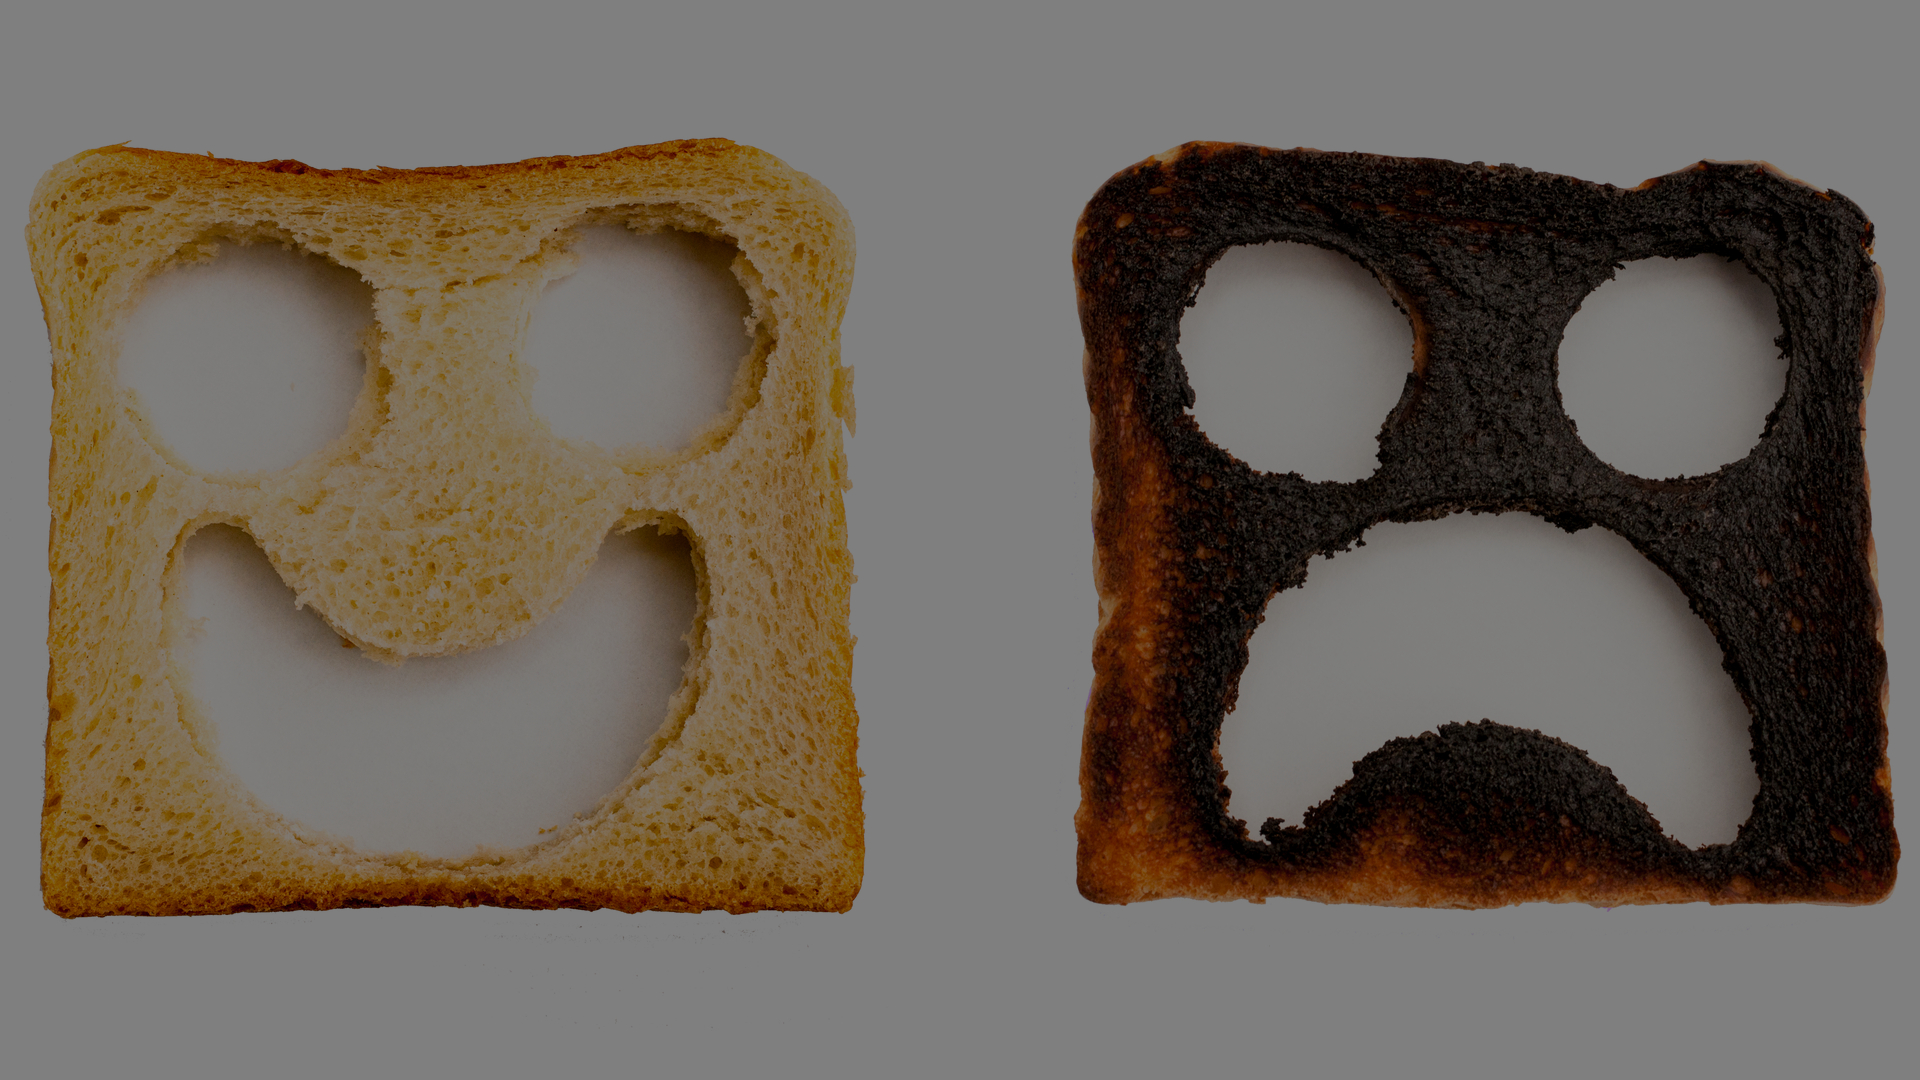 Full Guide To Acrylamide in Food: Should You Be Worried?